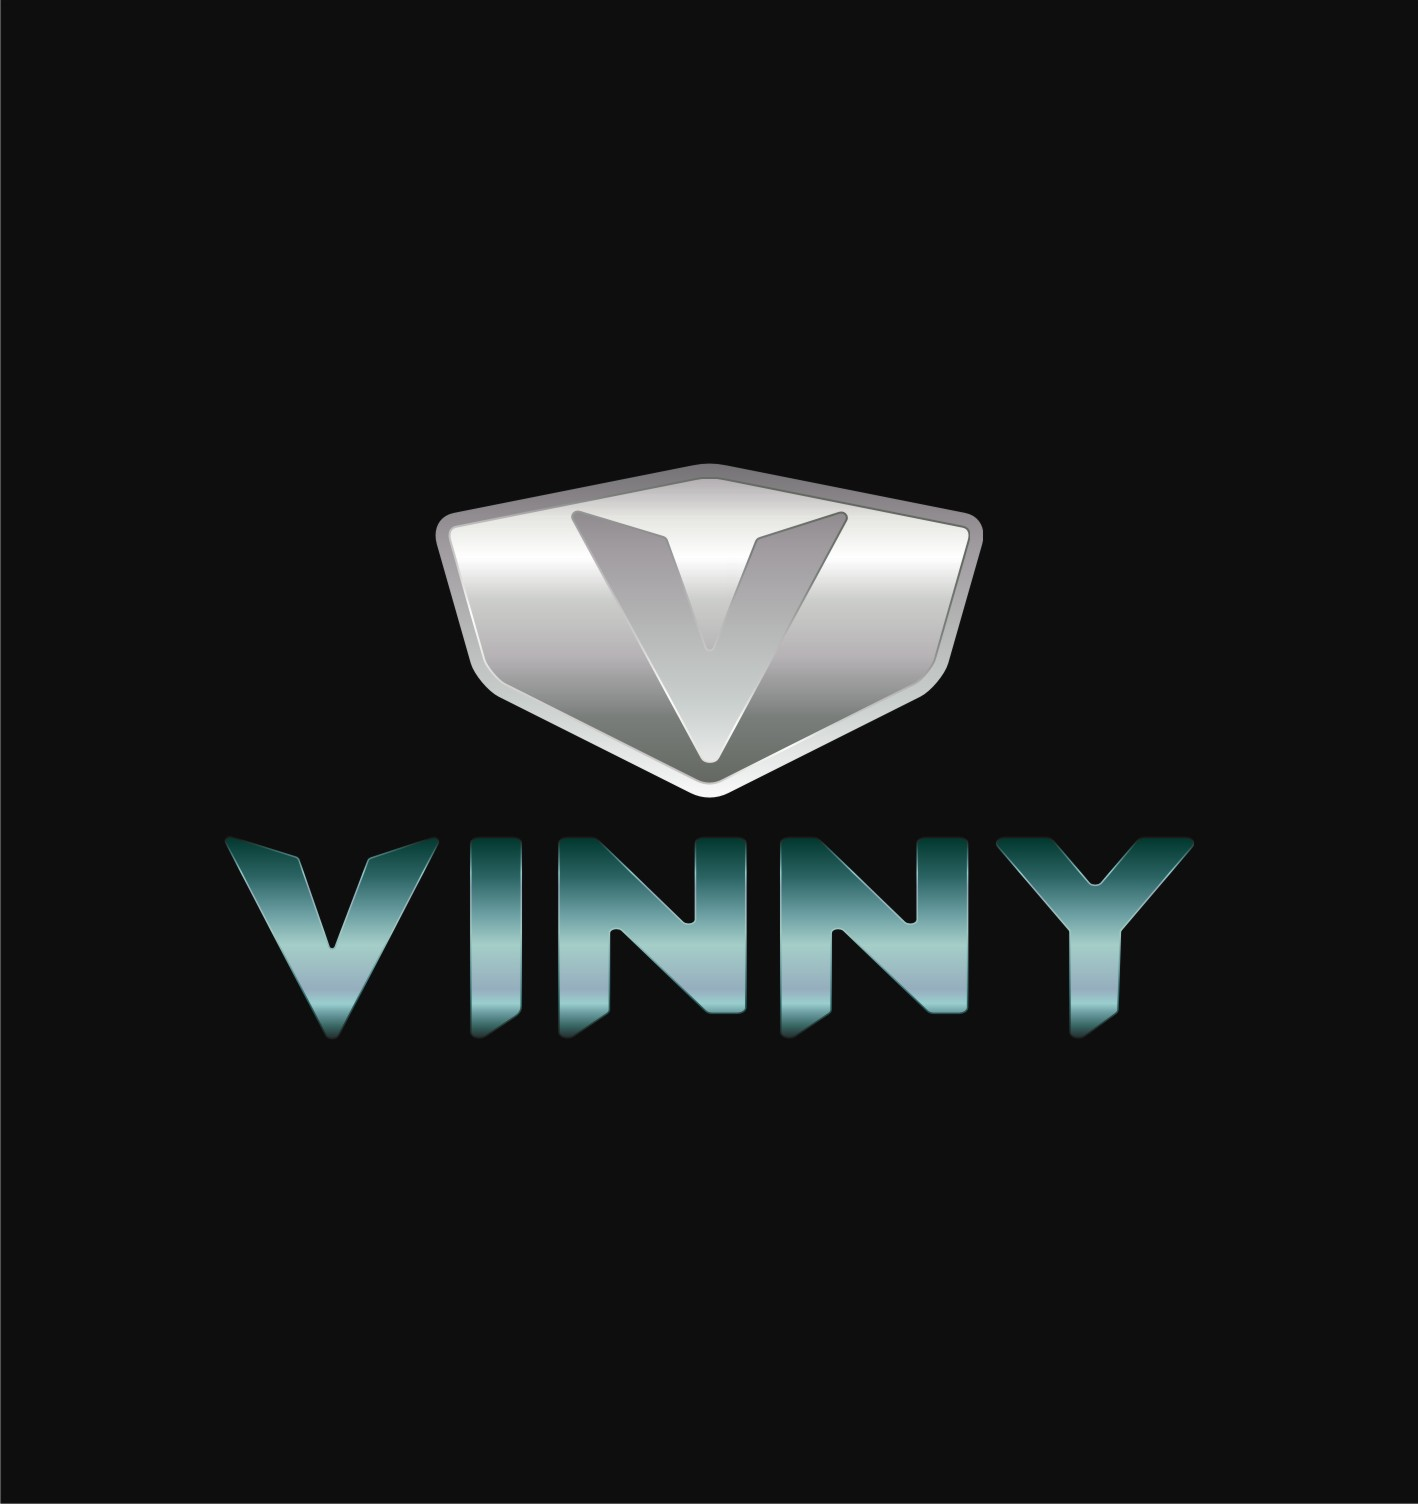 Logo Design by Private User - Entry No. 183 in the Logo Design Contest Unique Logo Design Wanted for Vinny.